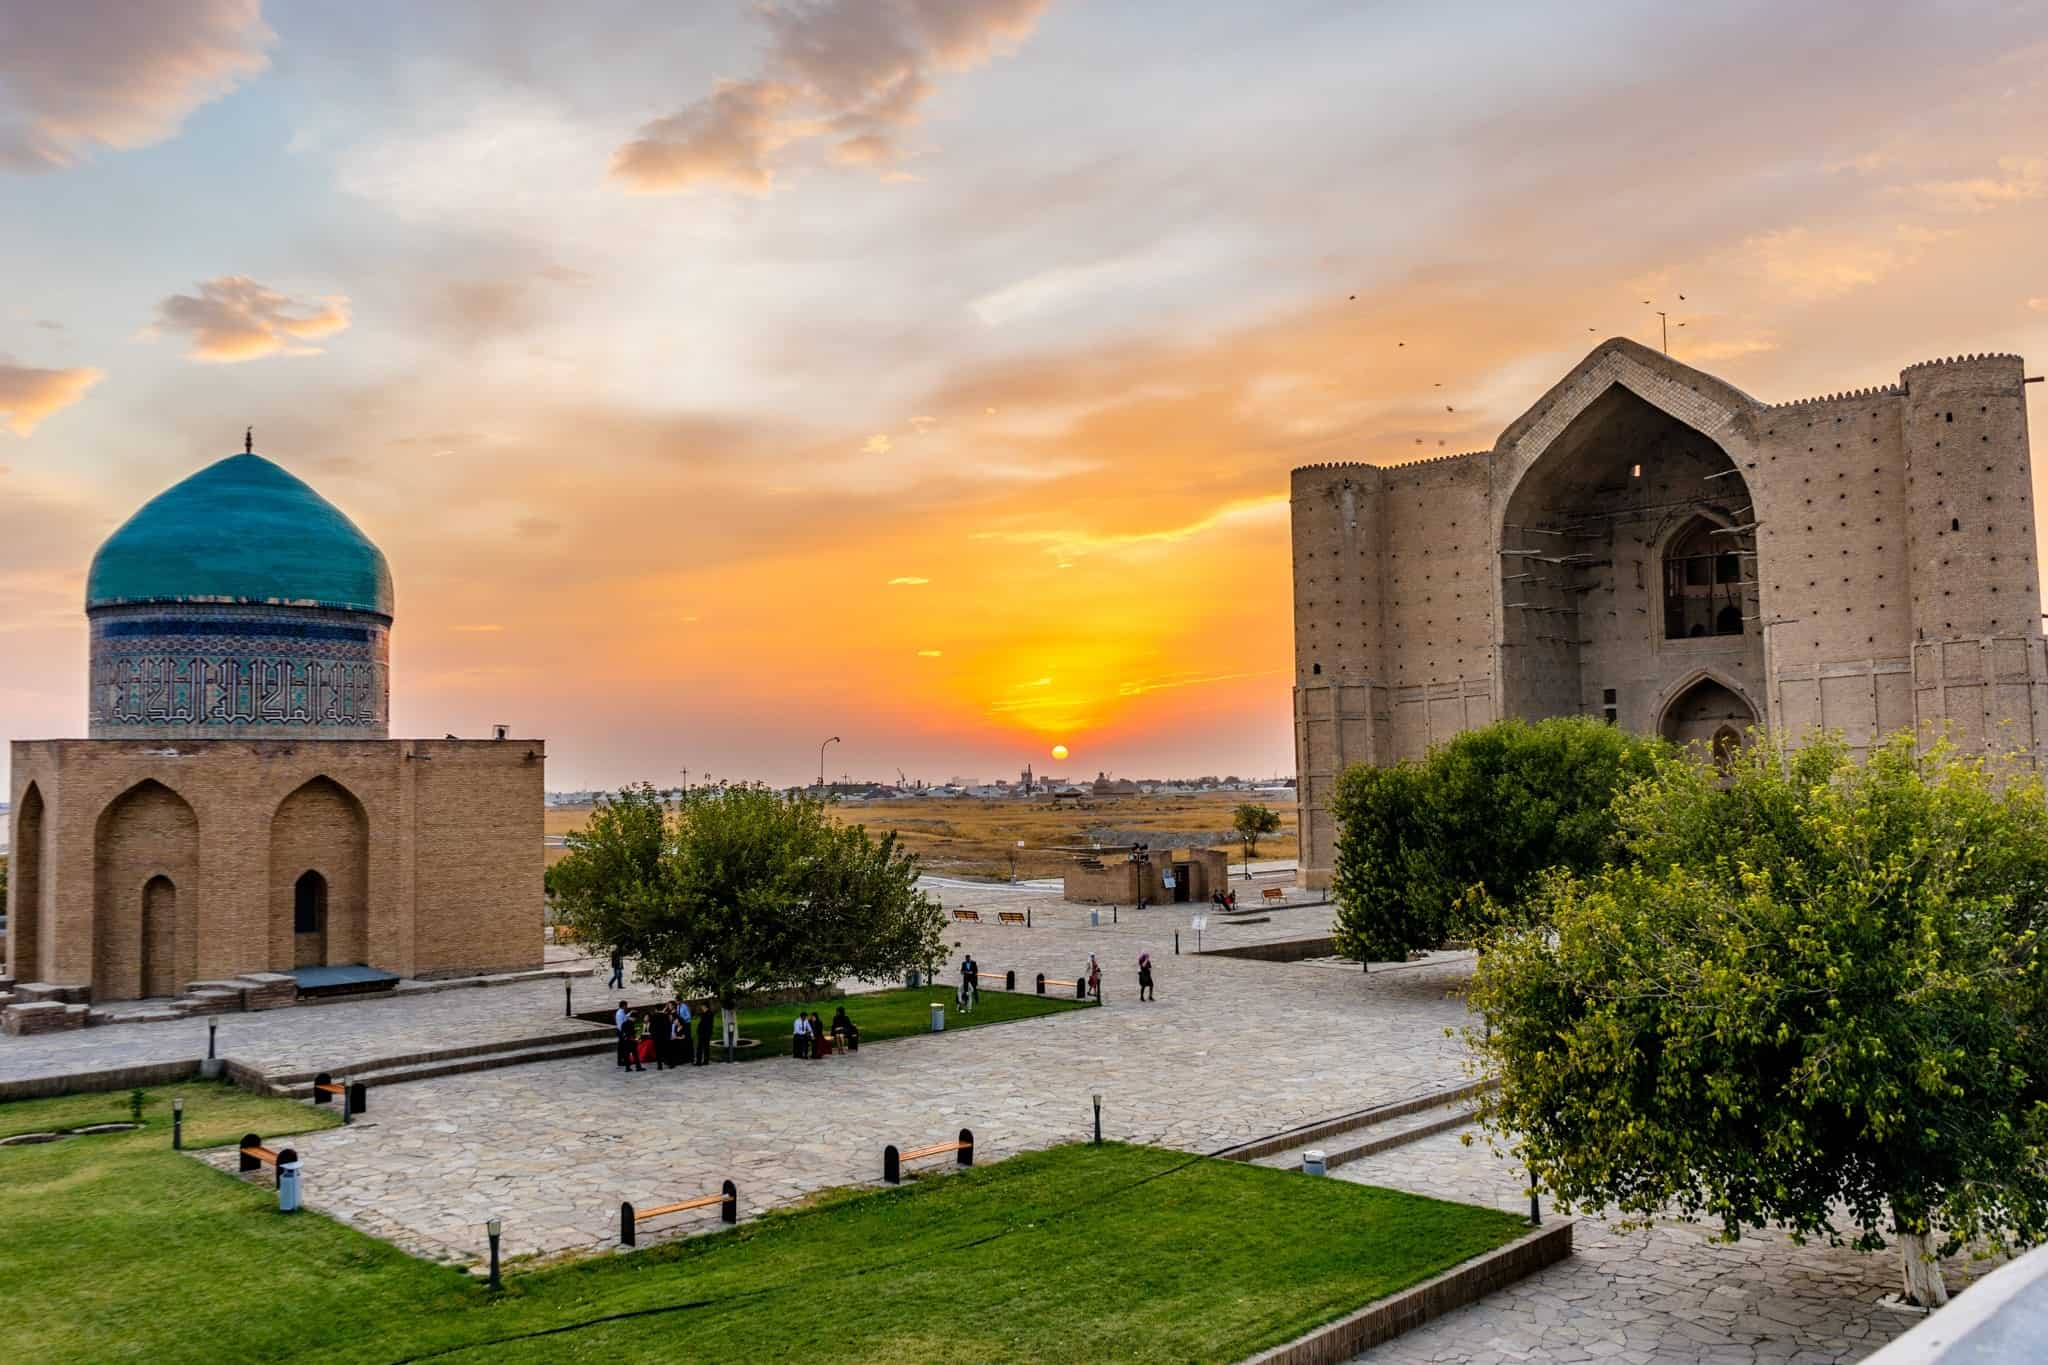 Sunset The Mausoleum Of Khawaja Ahmed Yasawi Turkistan